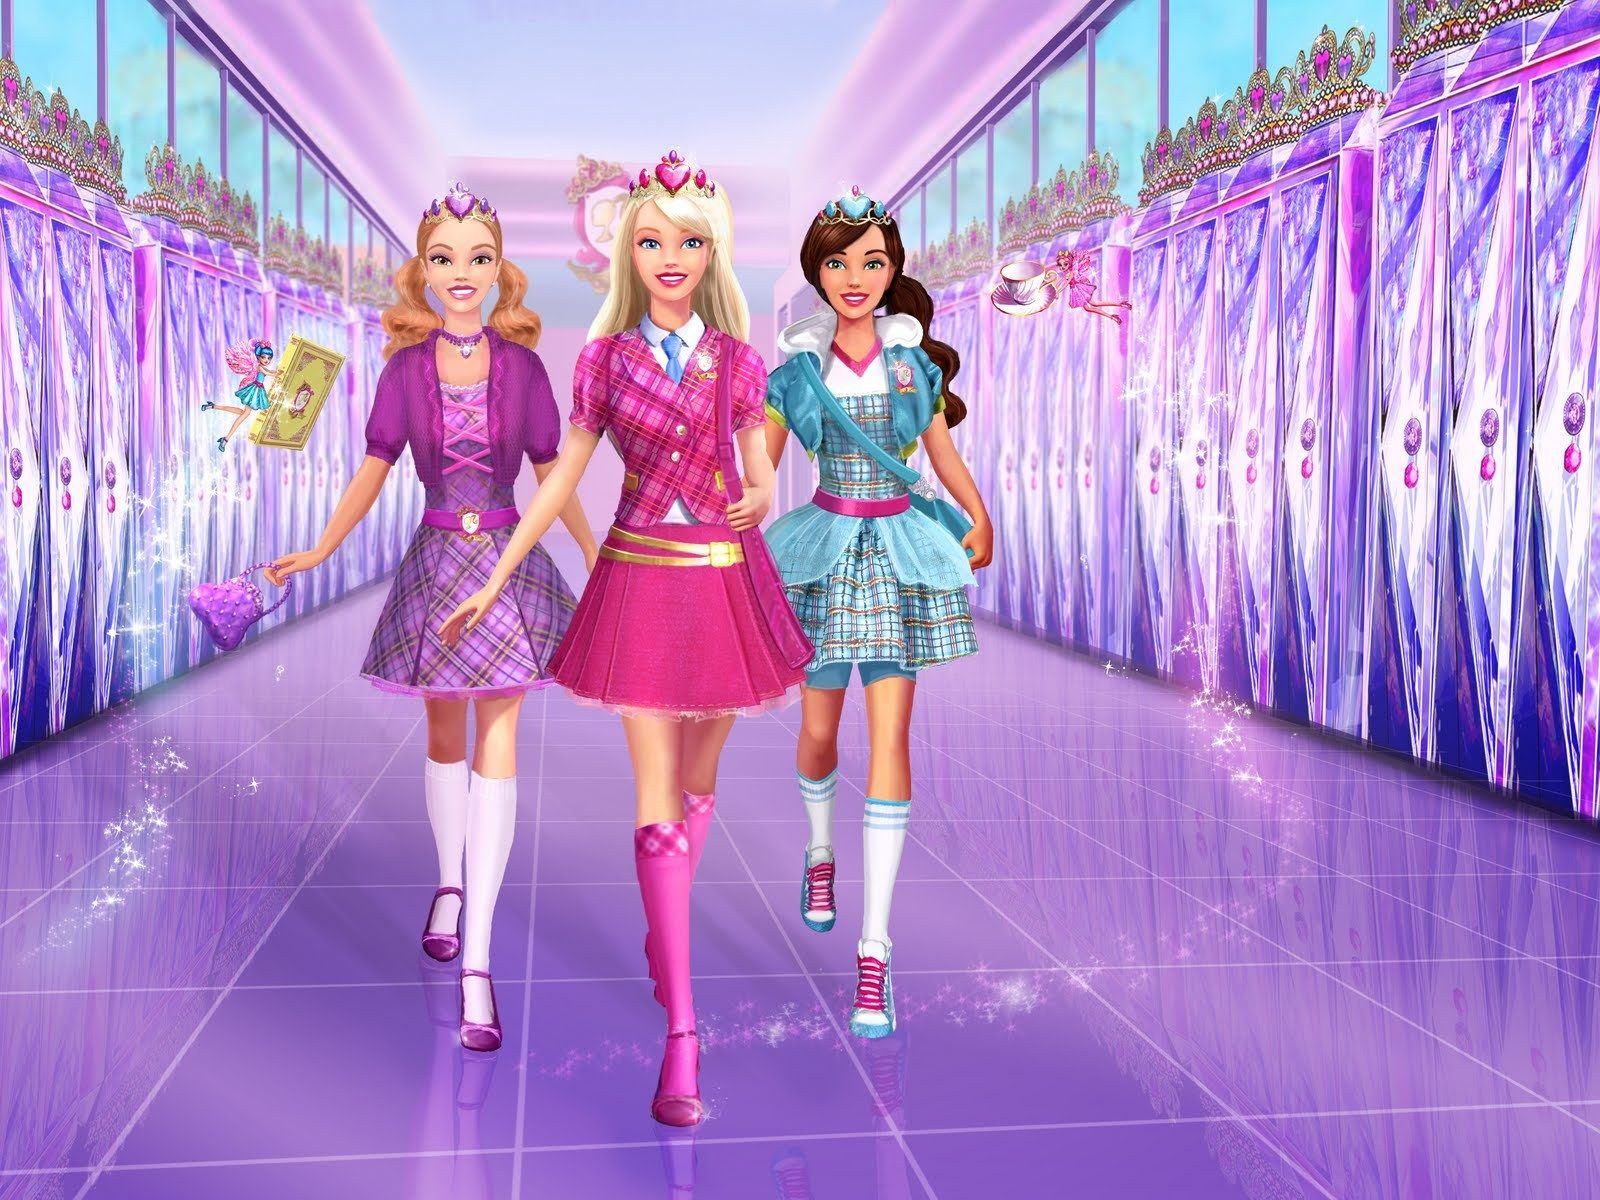 Barbie Movie Hd Wallpapers Free Download New Hd